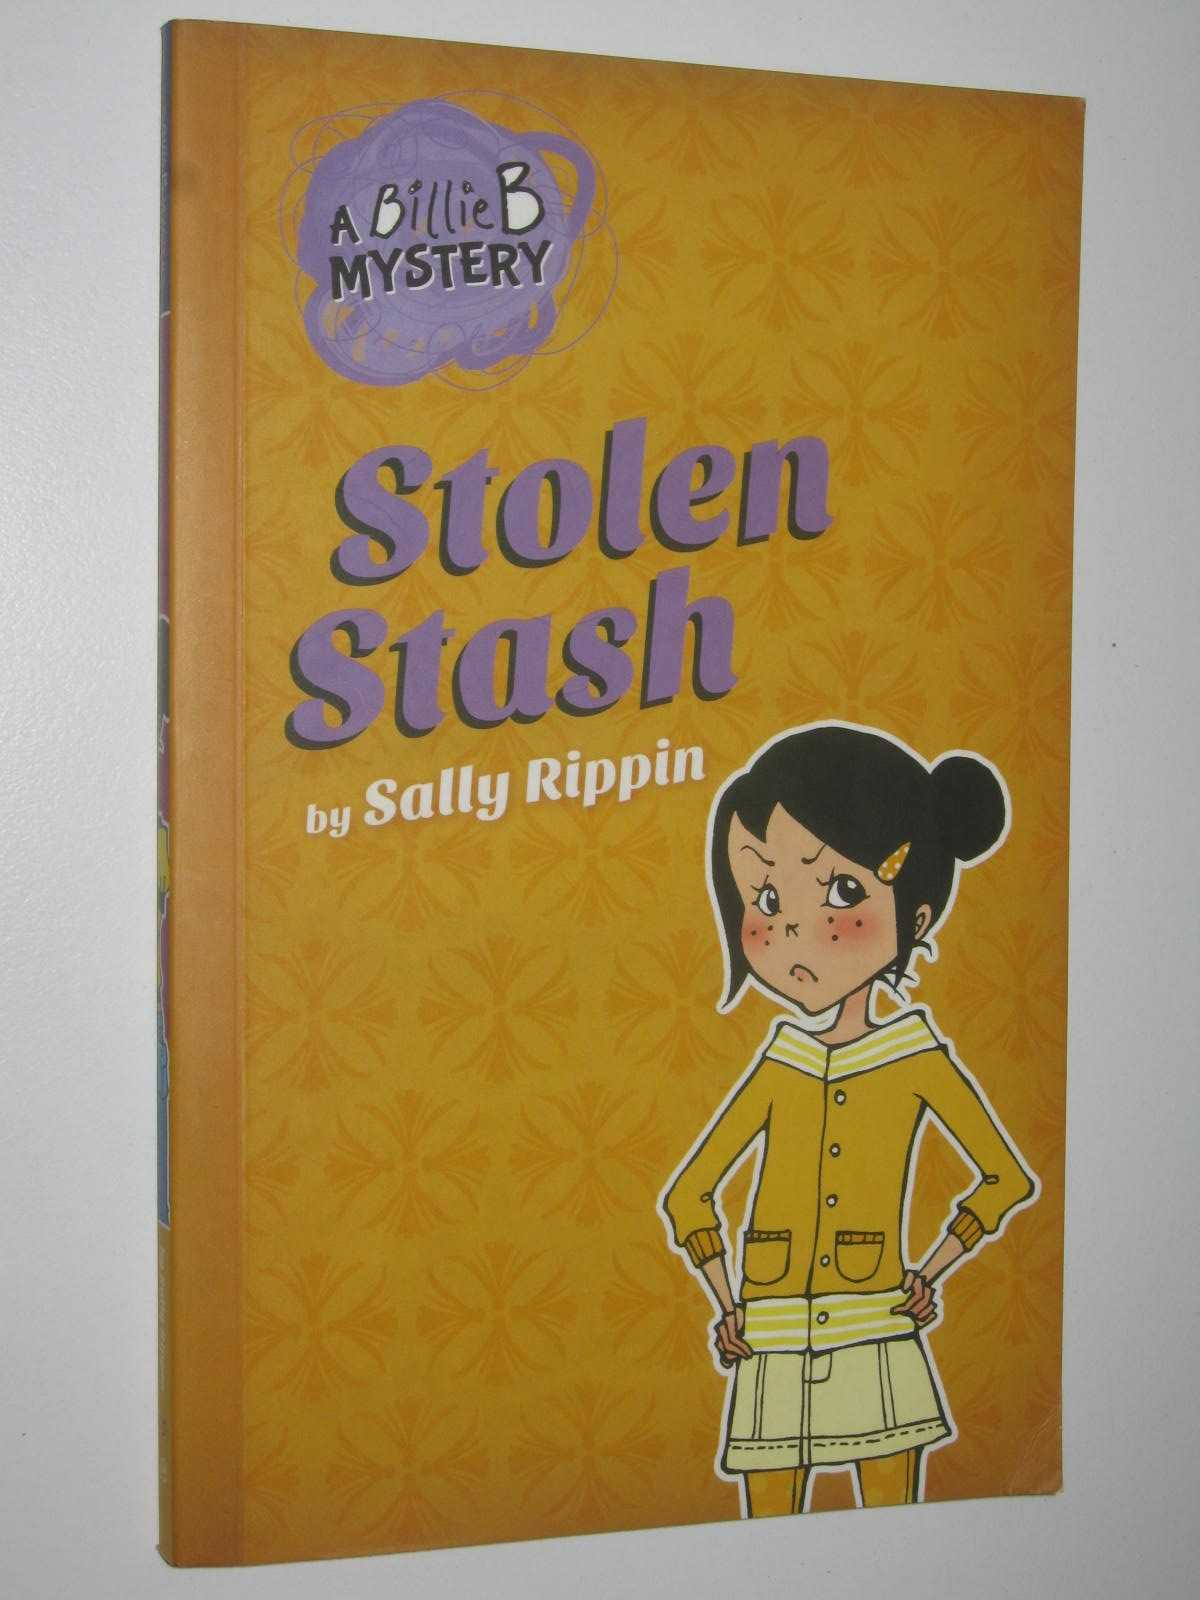 Image for Stolen Stash - Billie B Mystery Series #5